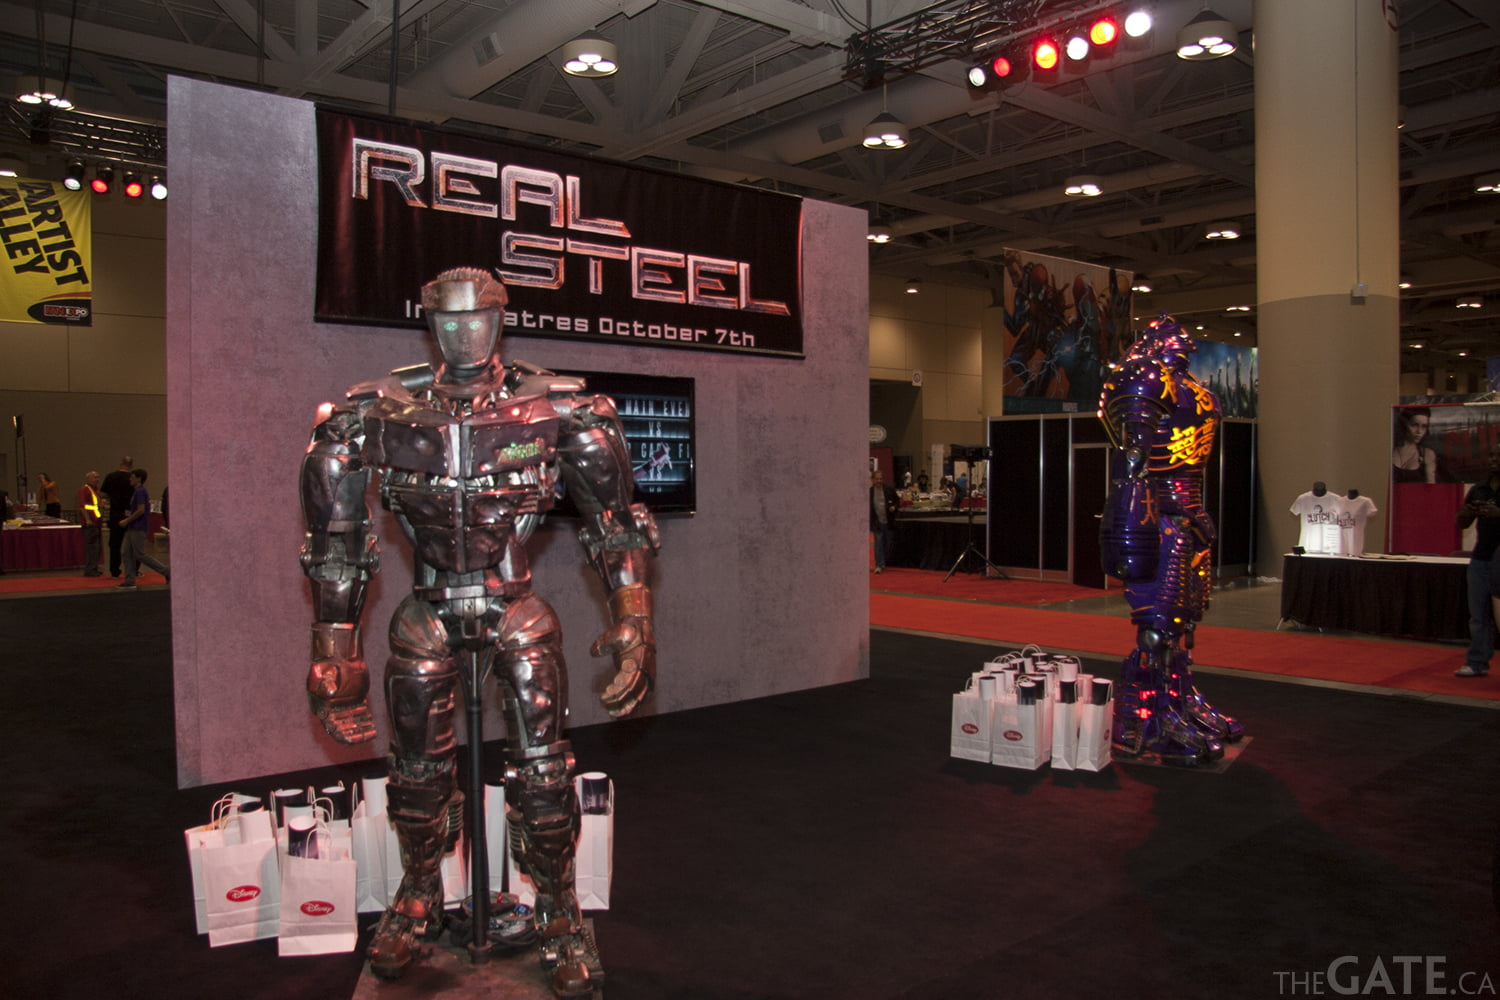 Robots of Real Steel